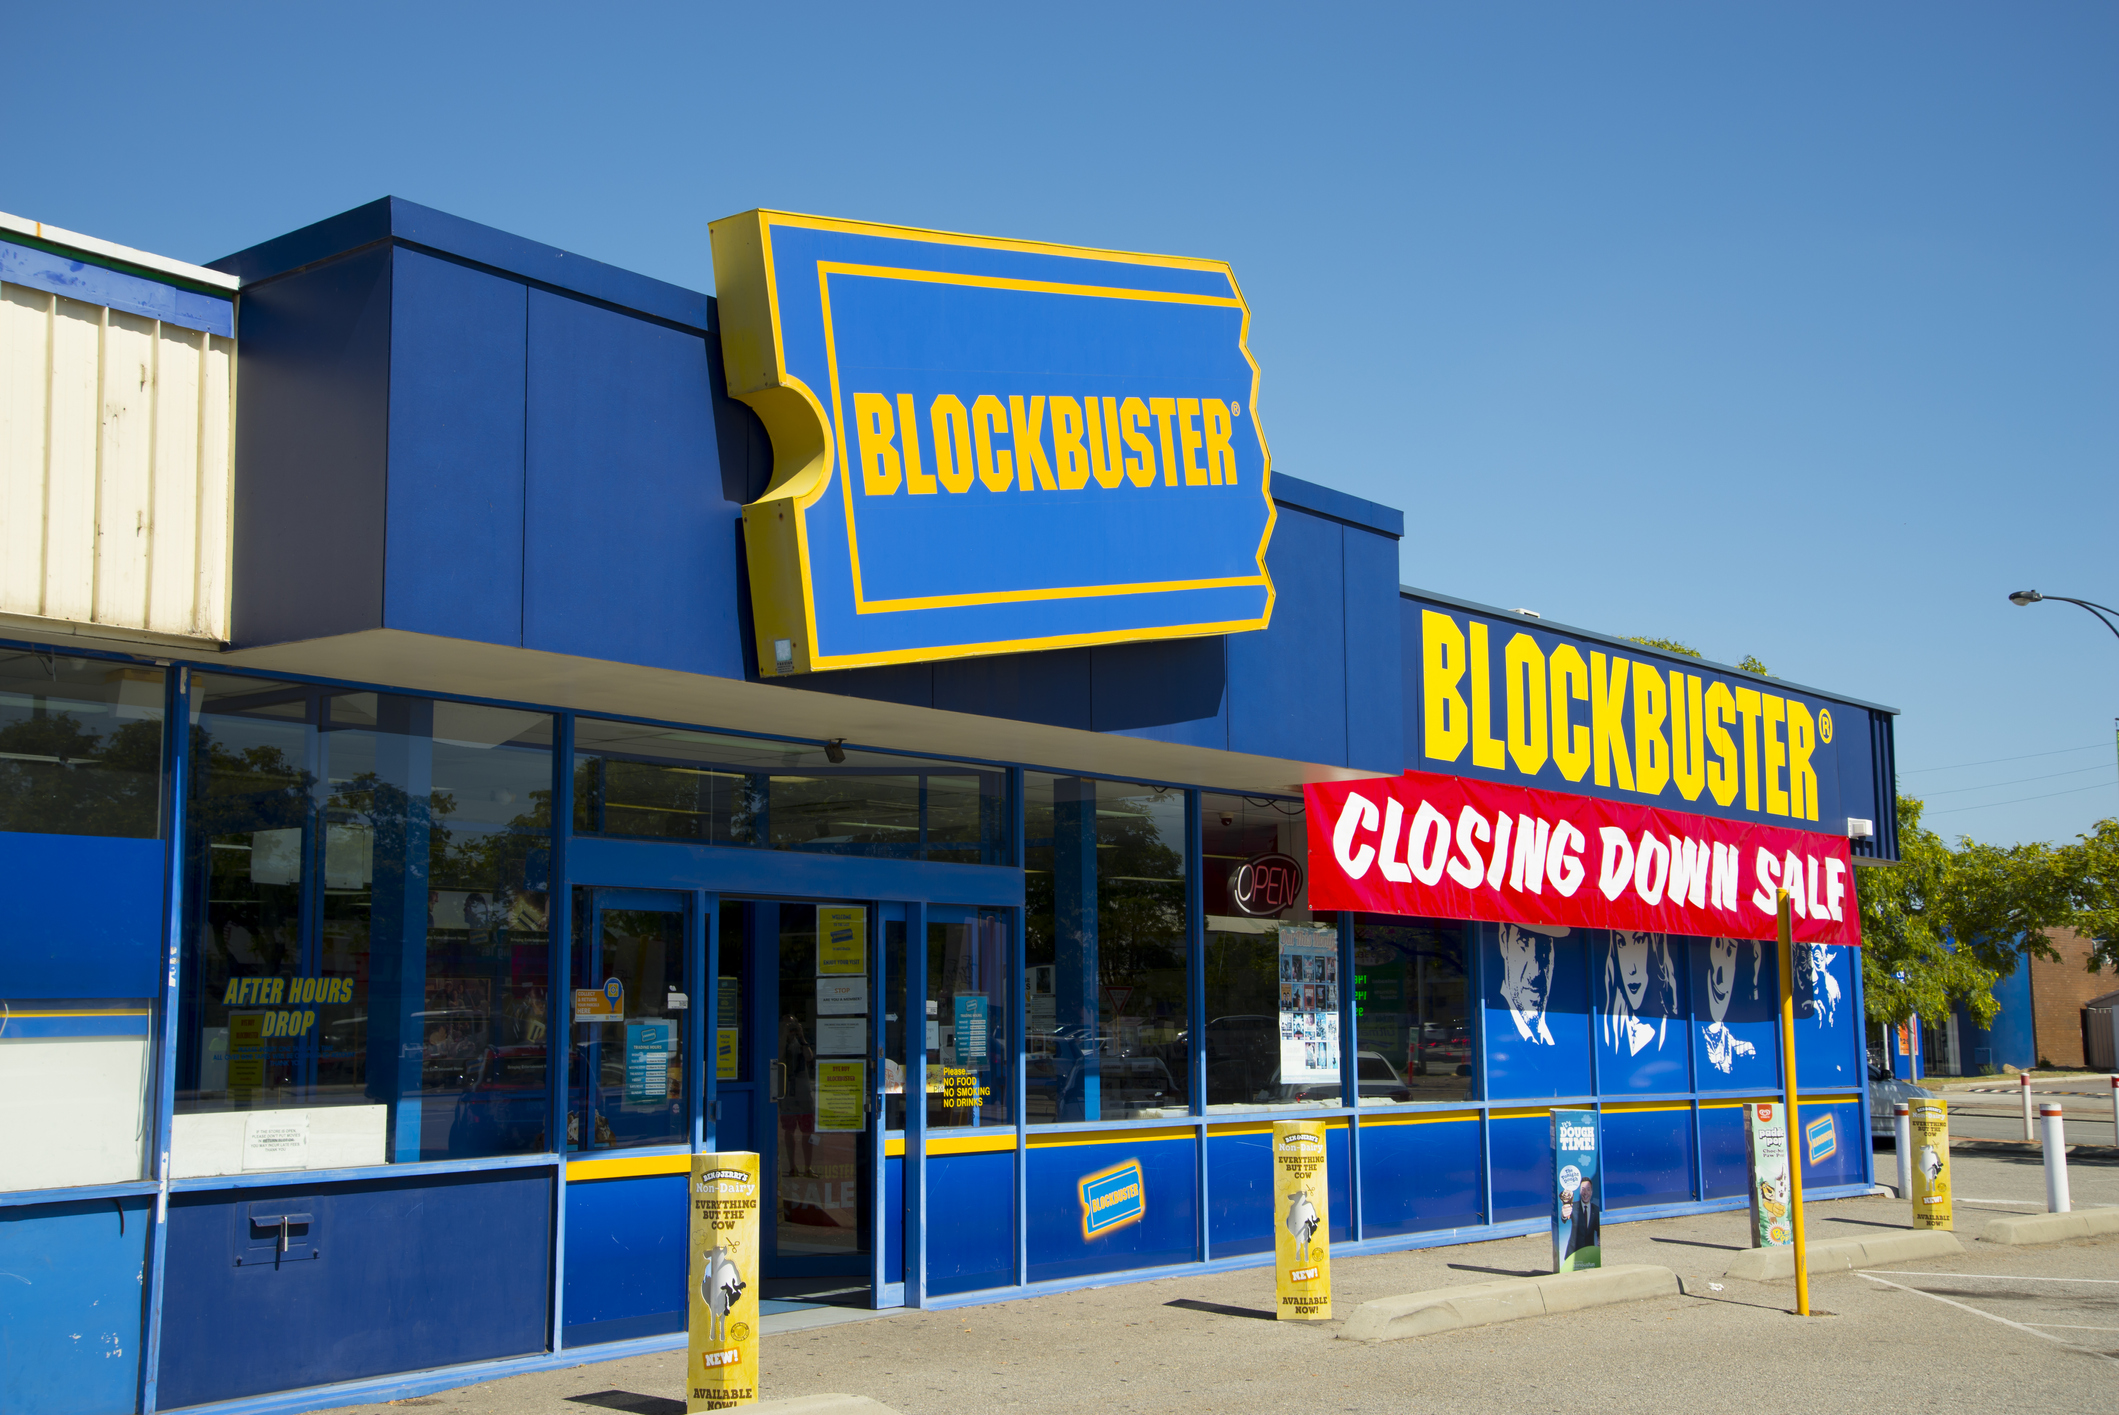 Netflix took down blockbuster